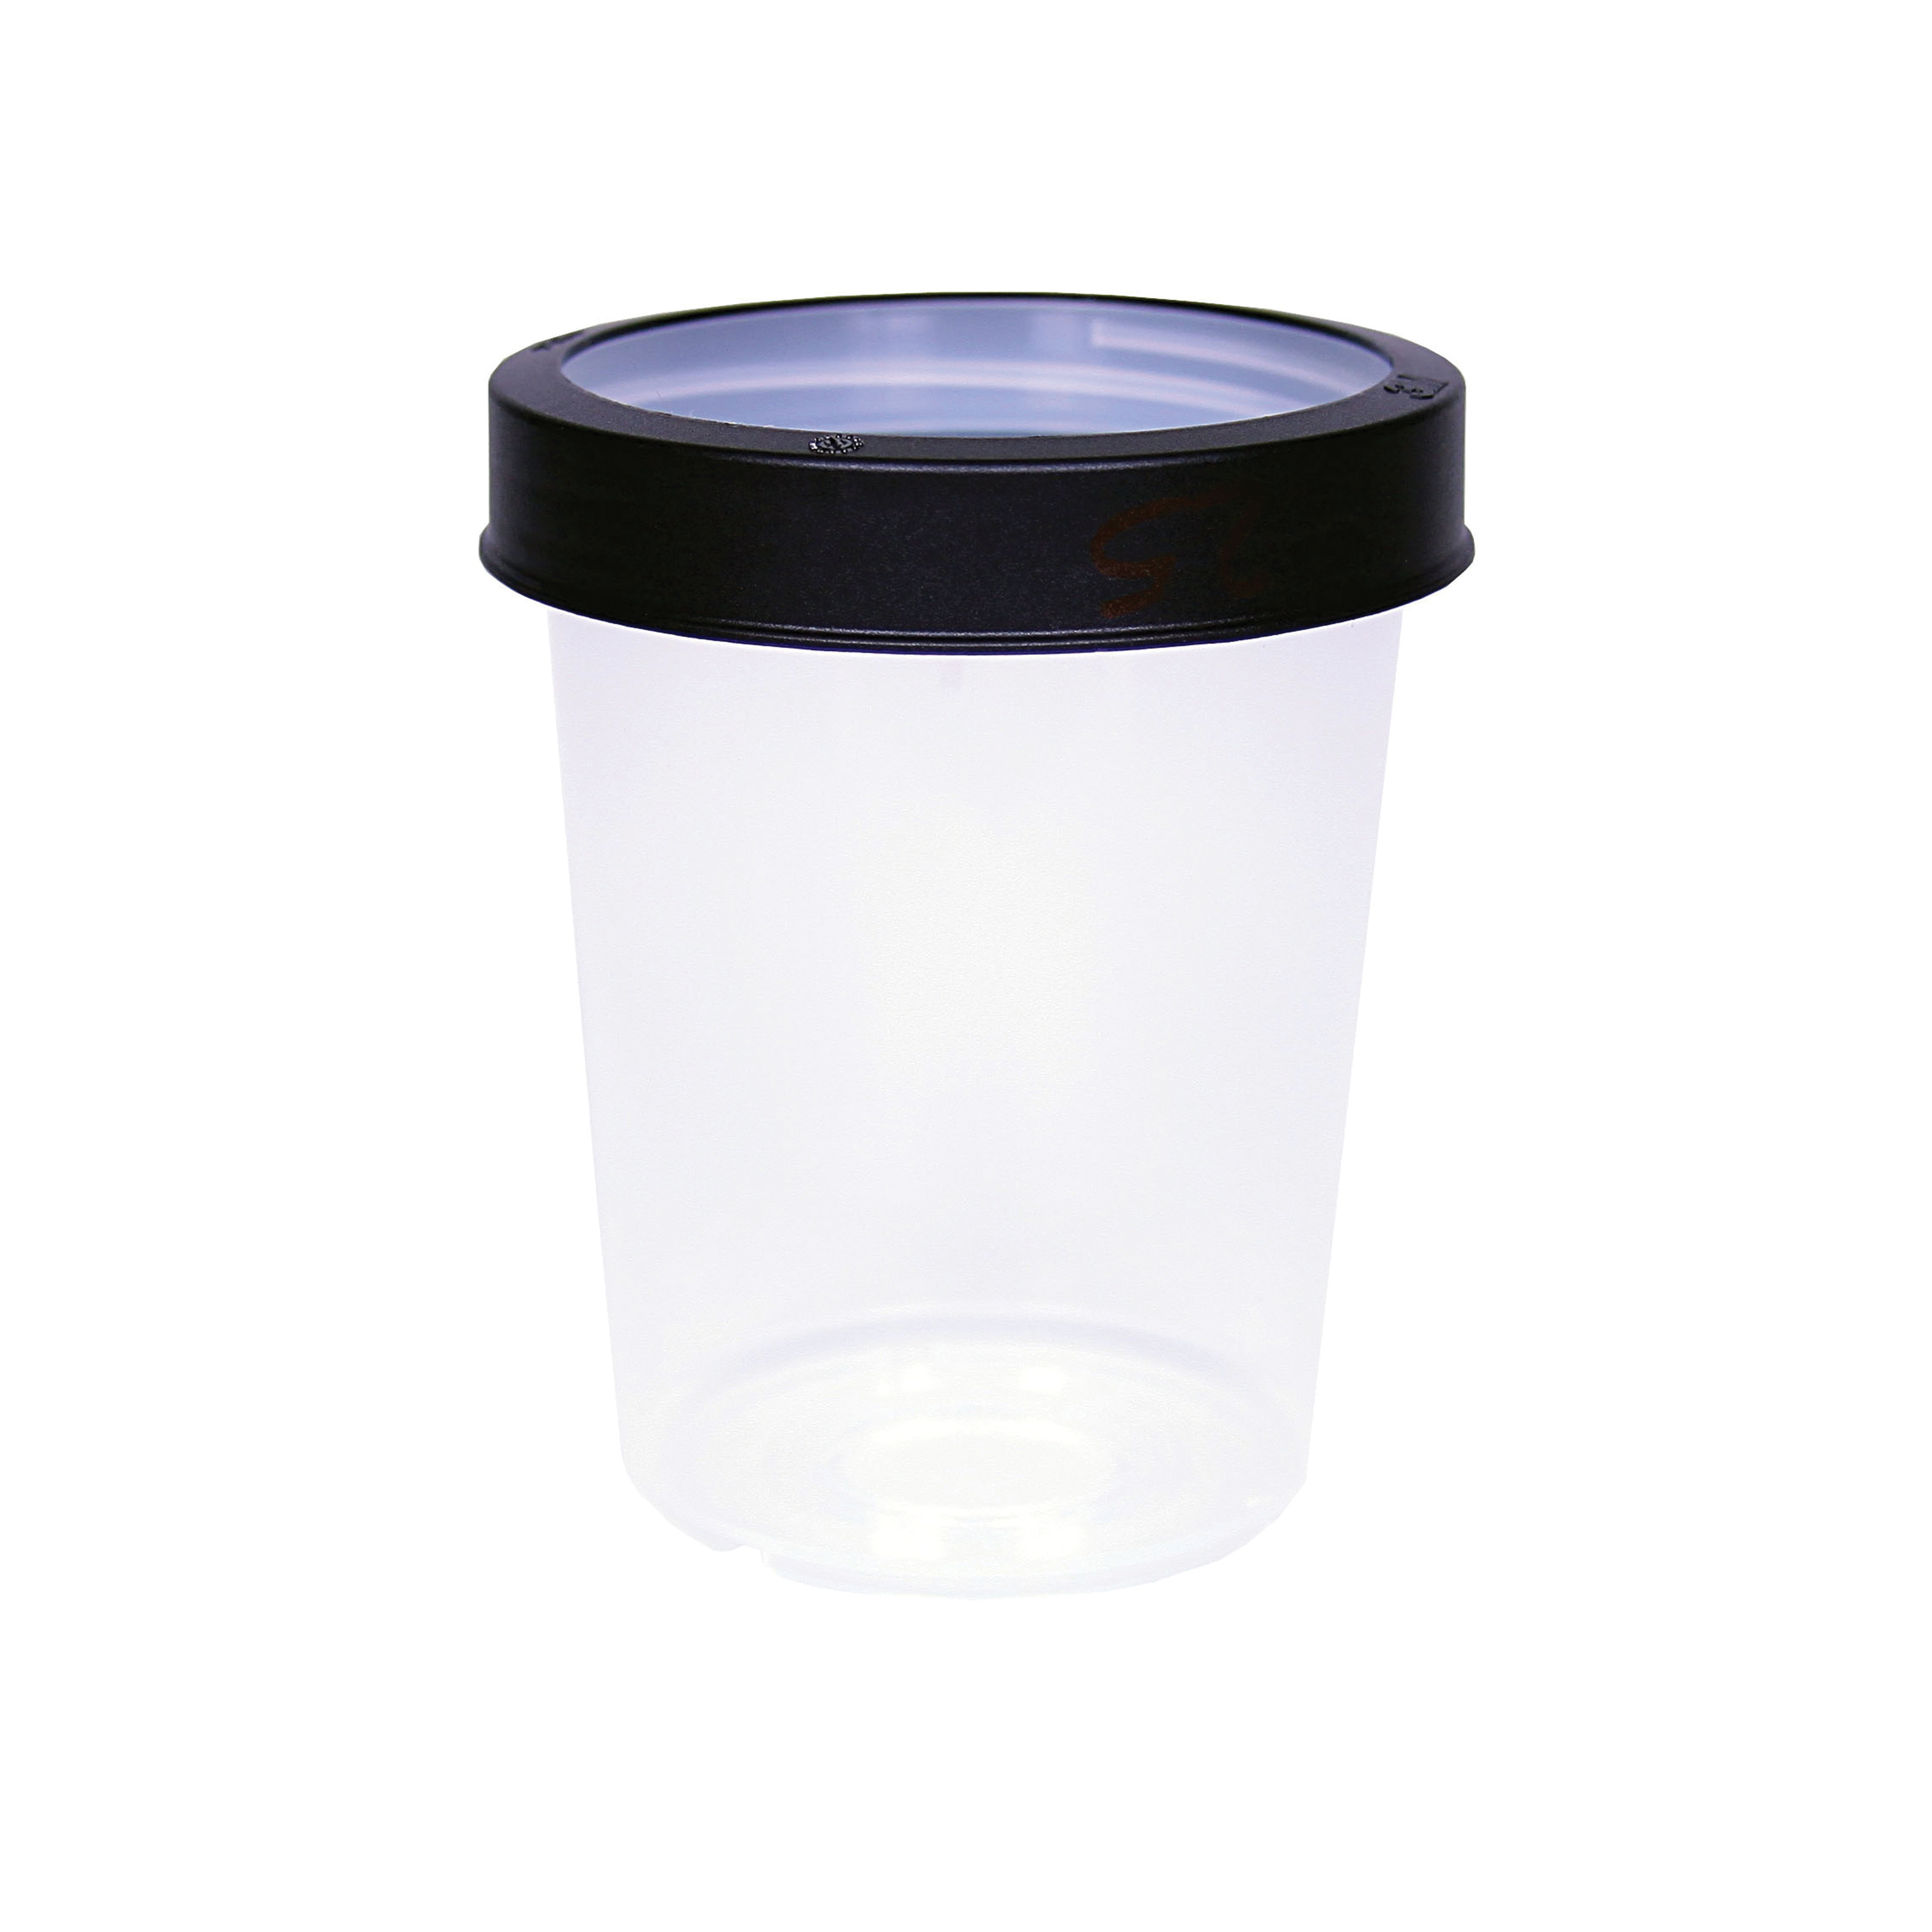 3M™ PPS™ 051131-16115 Mini Cup and Collar, 6 fl-oz Container, For Use With 3M™ Paint Preparation System